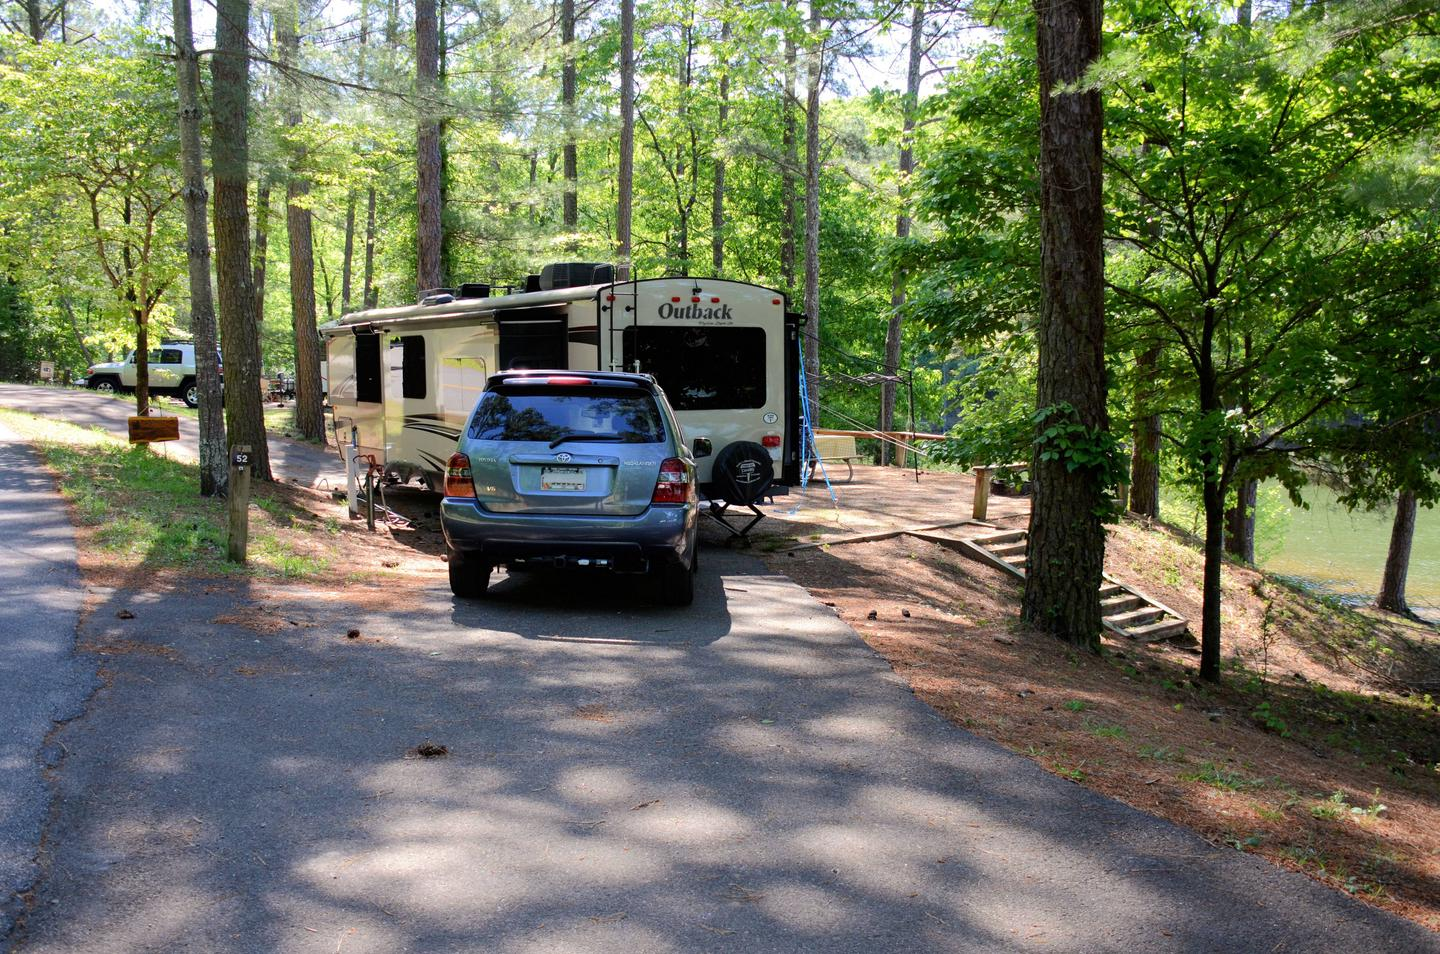 Pull-thru entrance, driveway slope, utilities-side clearanceMcKinney Campground, campsite 52